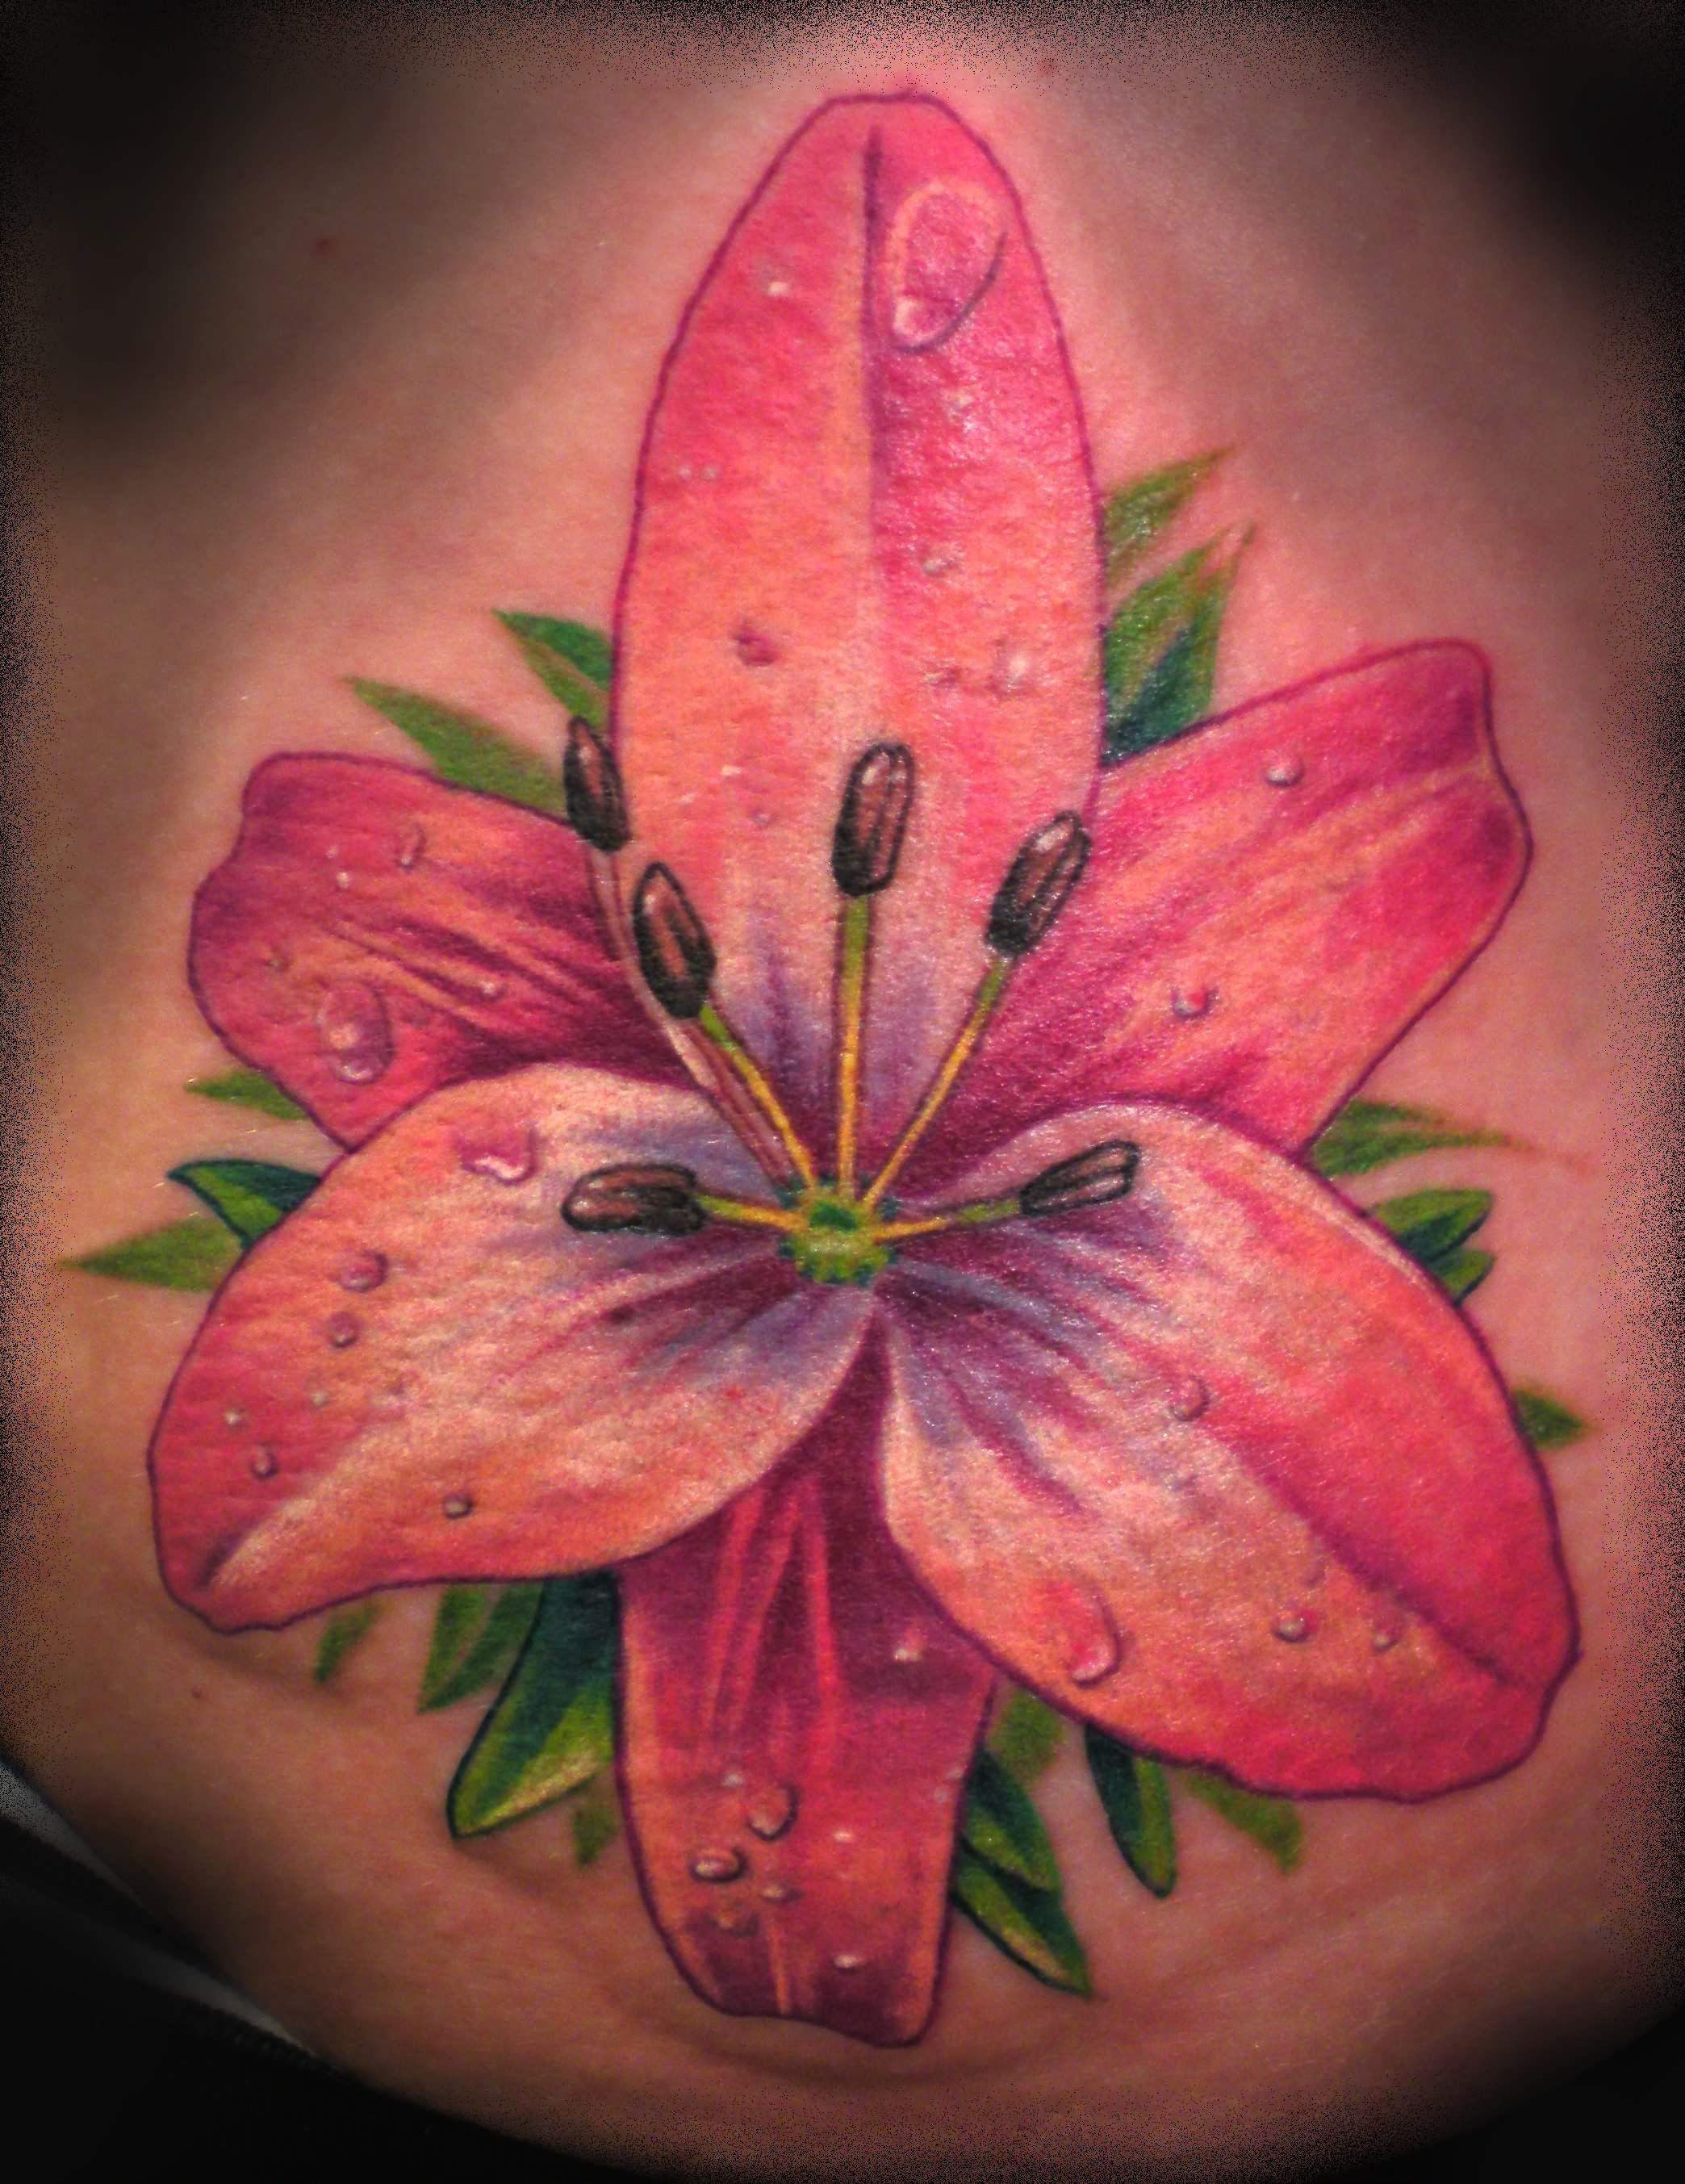 Flowertattoos body tattoos pictures 30 beauteous tattoo lilly flowertattoos body tattoos pictures 30 beauteous tattoo lilly flower izmirmasajfo